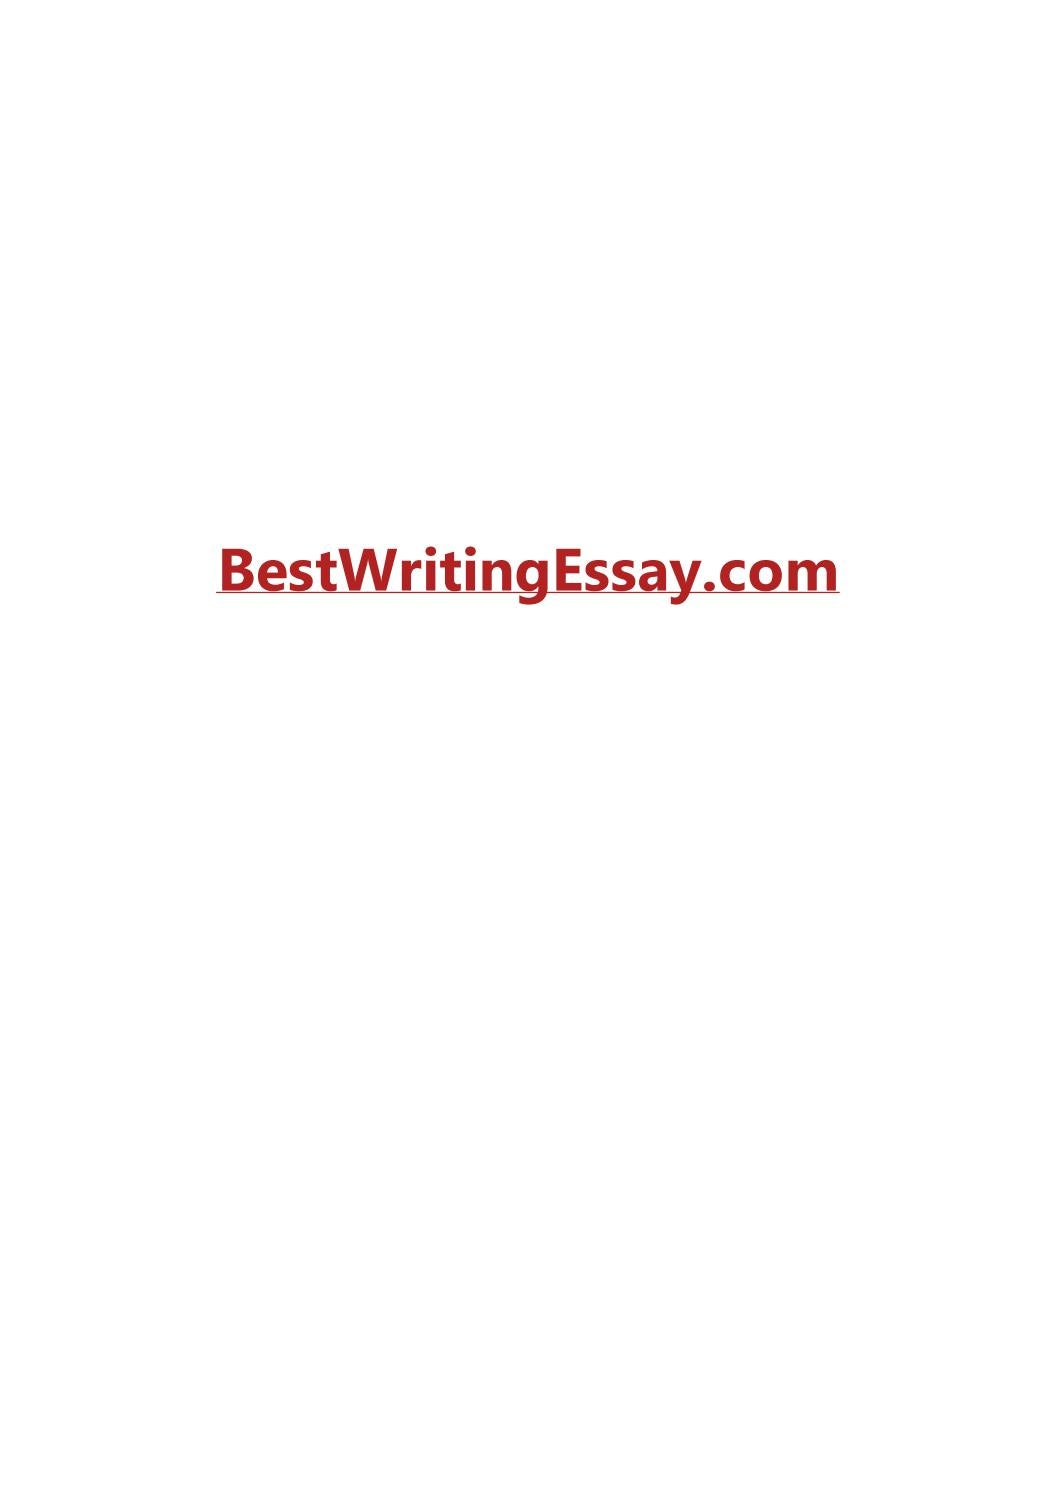 Sample Of Research Essay Paper  How To Learn English Essay also My School Essay In English How To Write An Essay About Healthy Lifestyle By  Diwali Essay In English